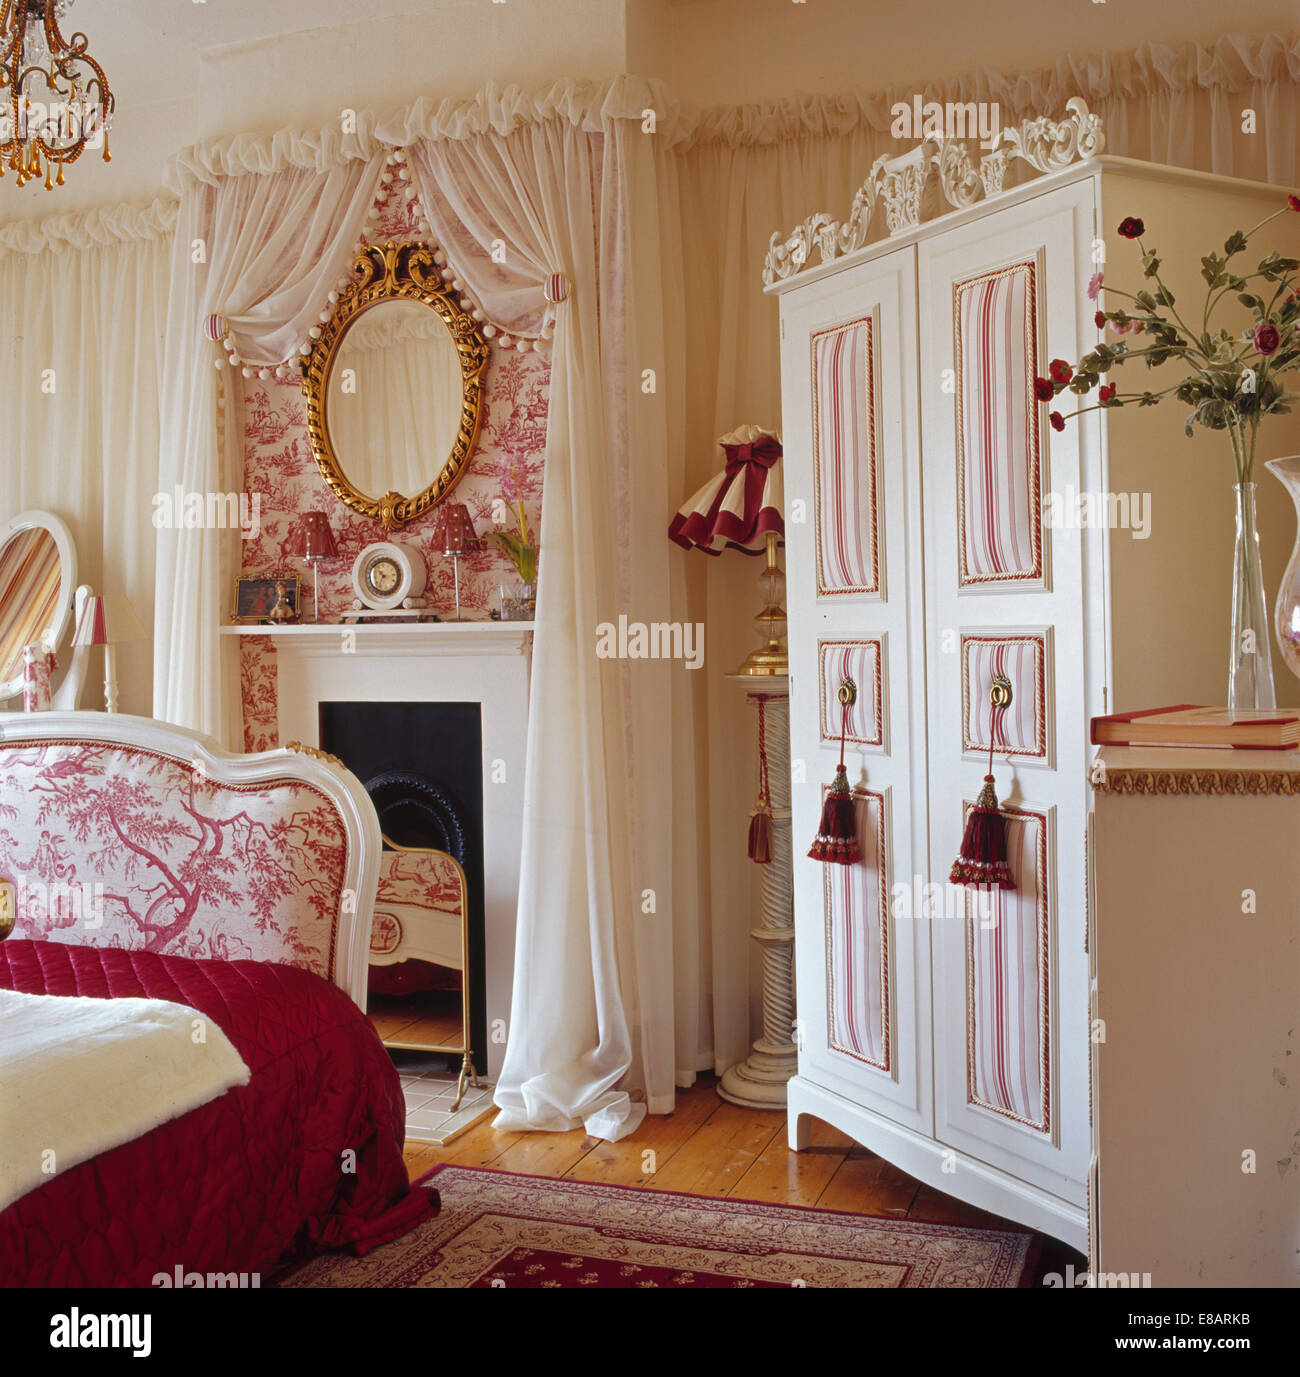 Cream Wardrobe In Bedroom With Cream Voile Drapes On Walls And Toile De Jouy  Wallpaper Above Fireplace